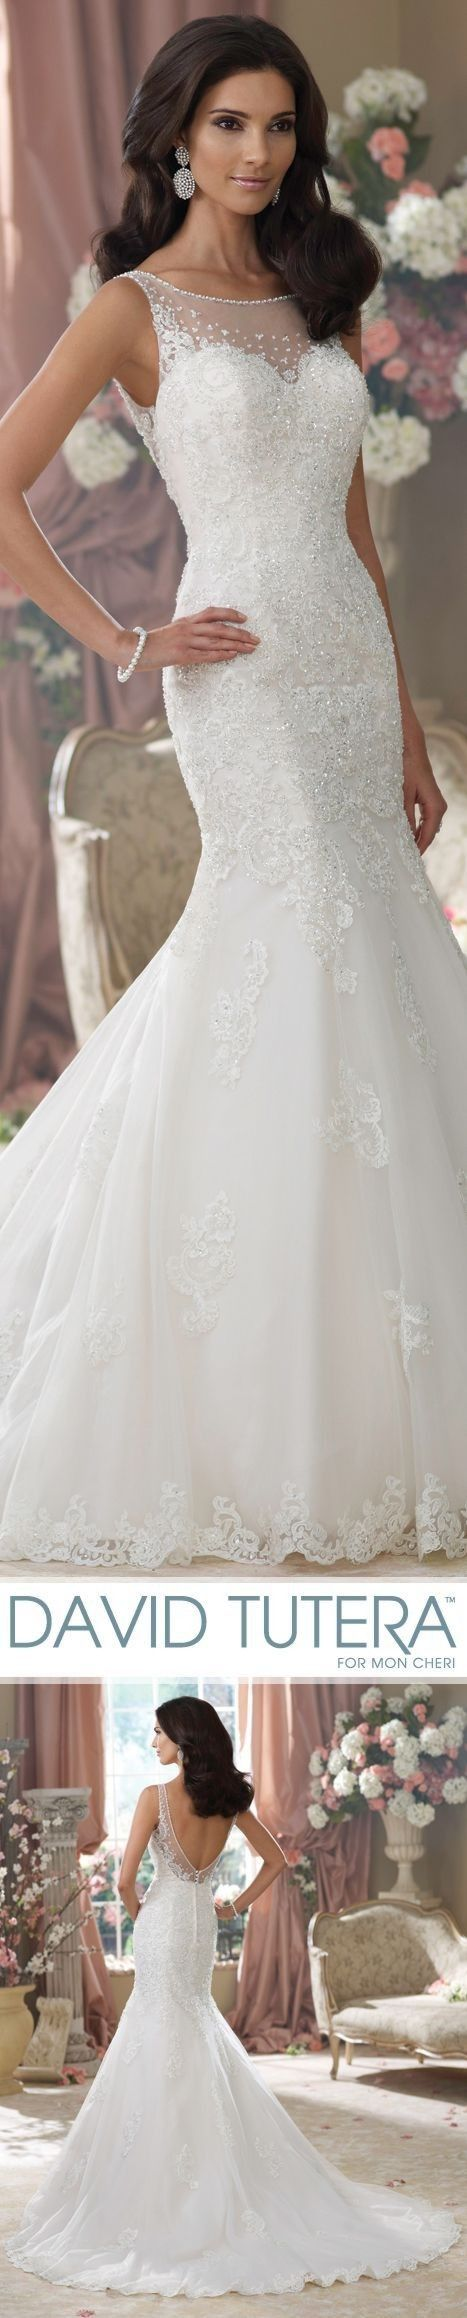 2nd hand wedding dresses  Wedding Wear  Second Hand Wedding Dresses  Bridal Gown Online Sale